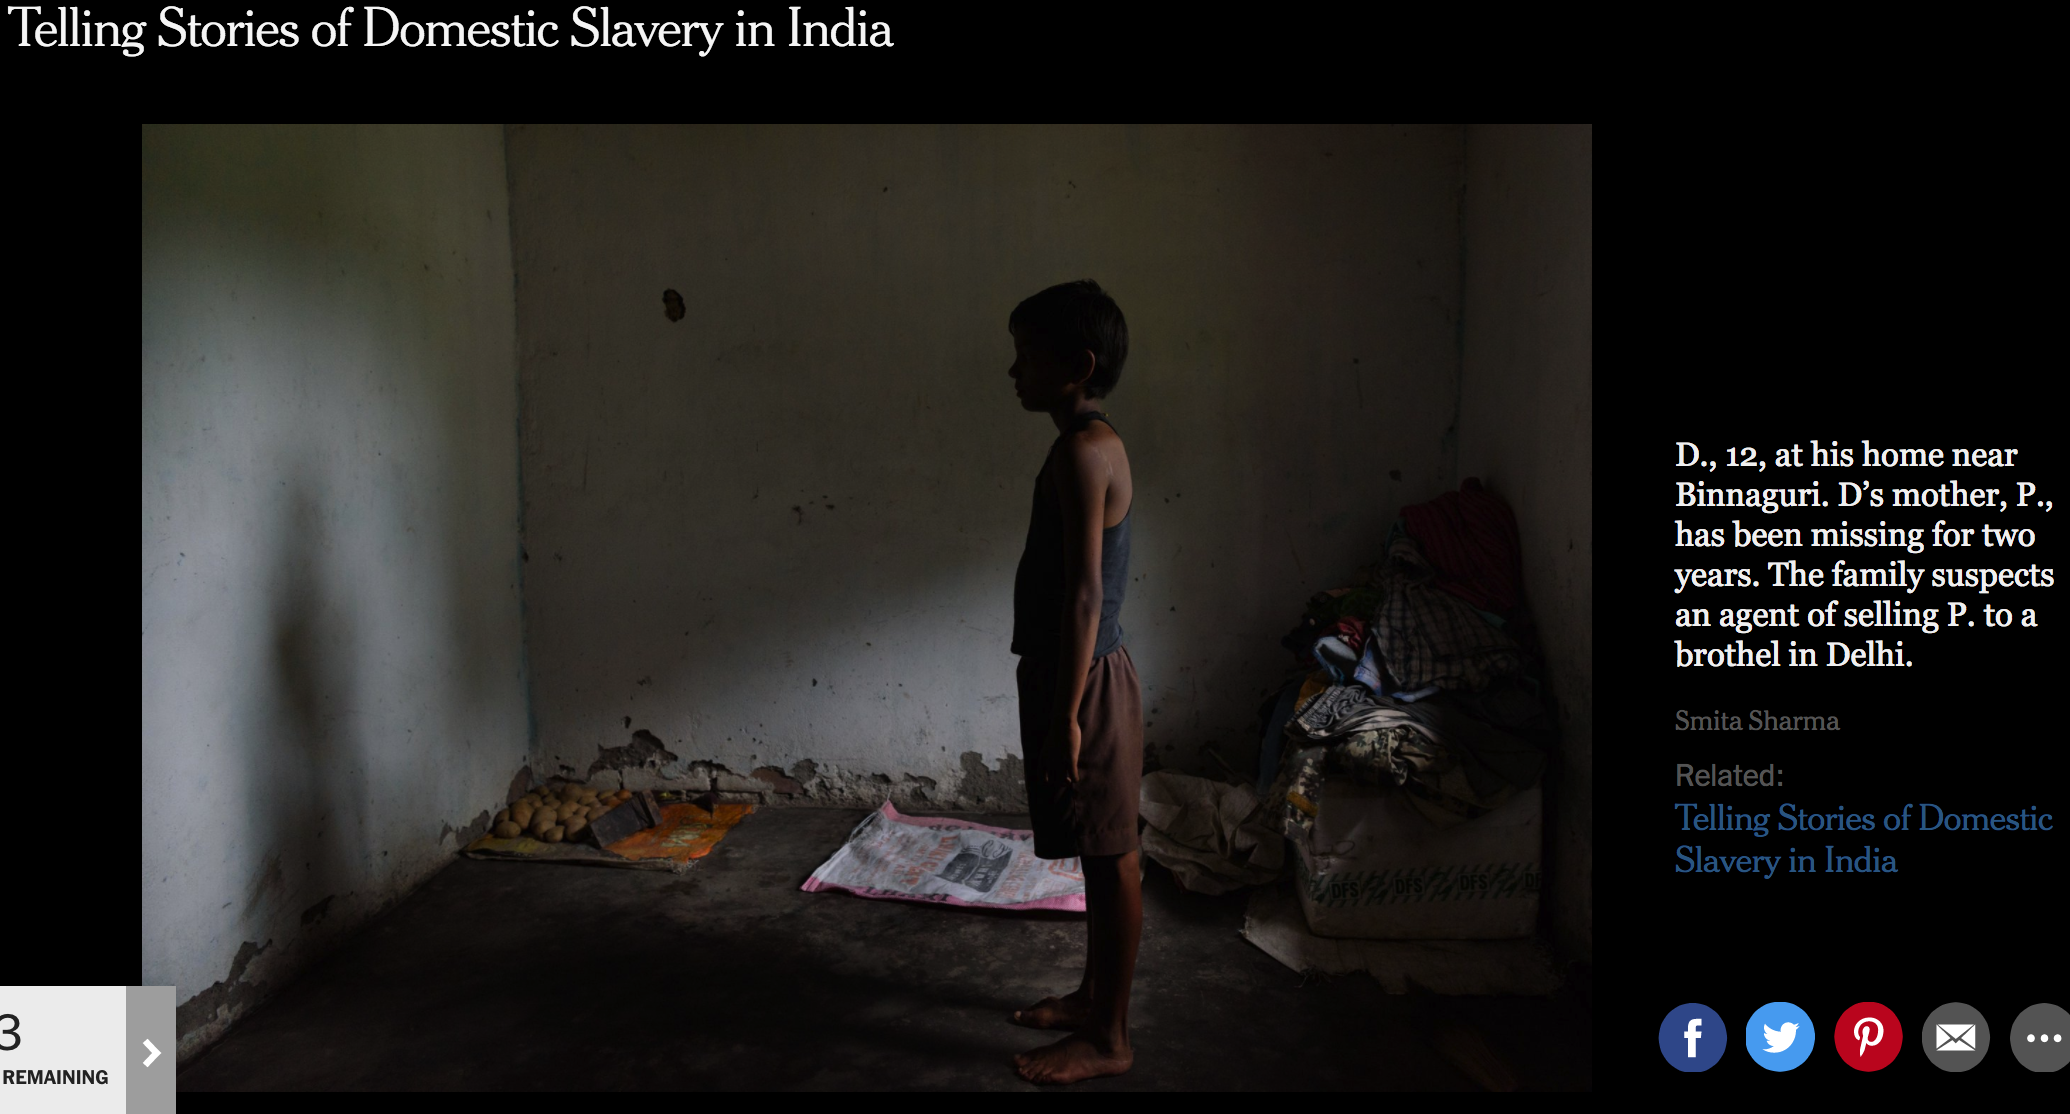 https://www.nytimes.com/slideshow/2017/12/04/blogs/telling-stories-of-domestic-slavery-in-india/s/04-lens-smita-slide-7M02.html